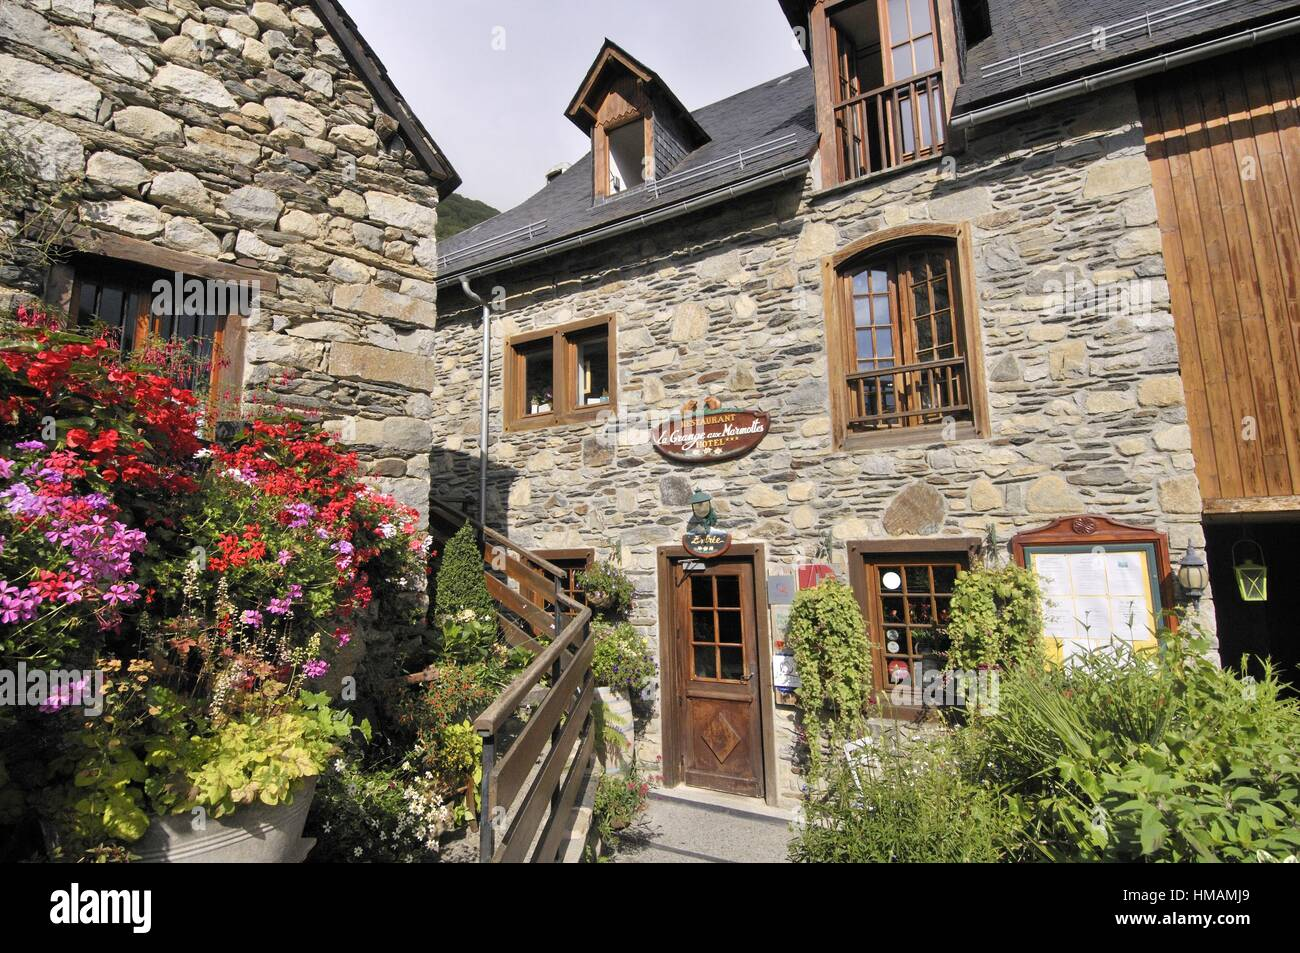 Grange Aux Marmottes La Grange Aux Marmottes Hotel Viscos French Commune Located In